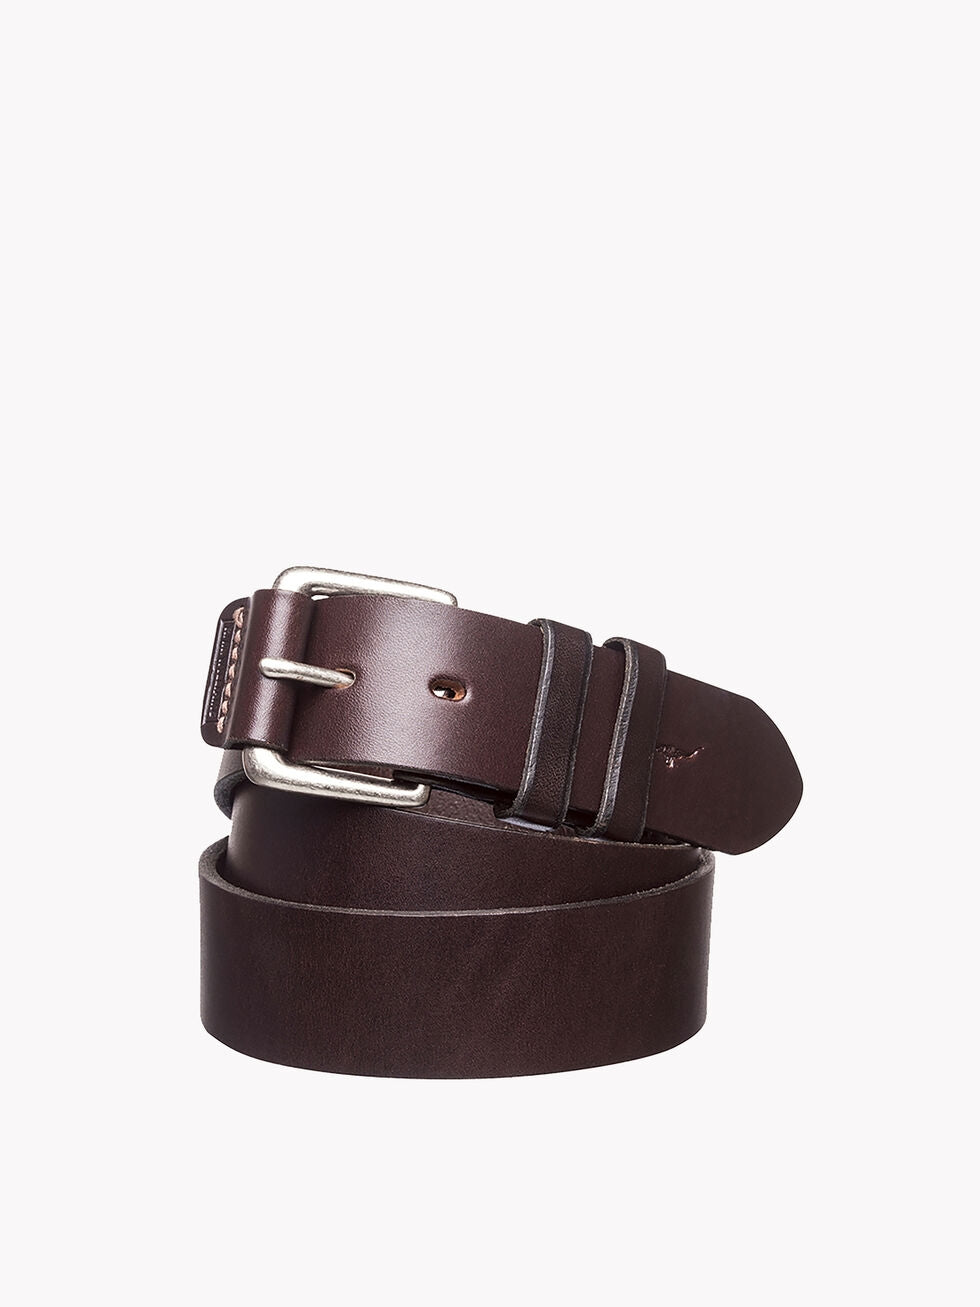 RM Williams 1 1/2 Covered Buckle Belt